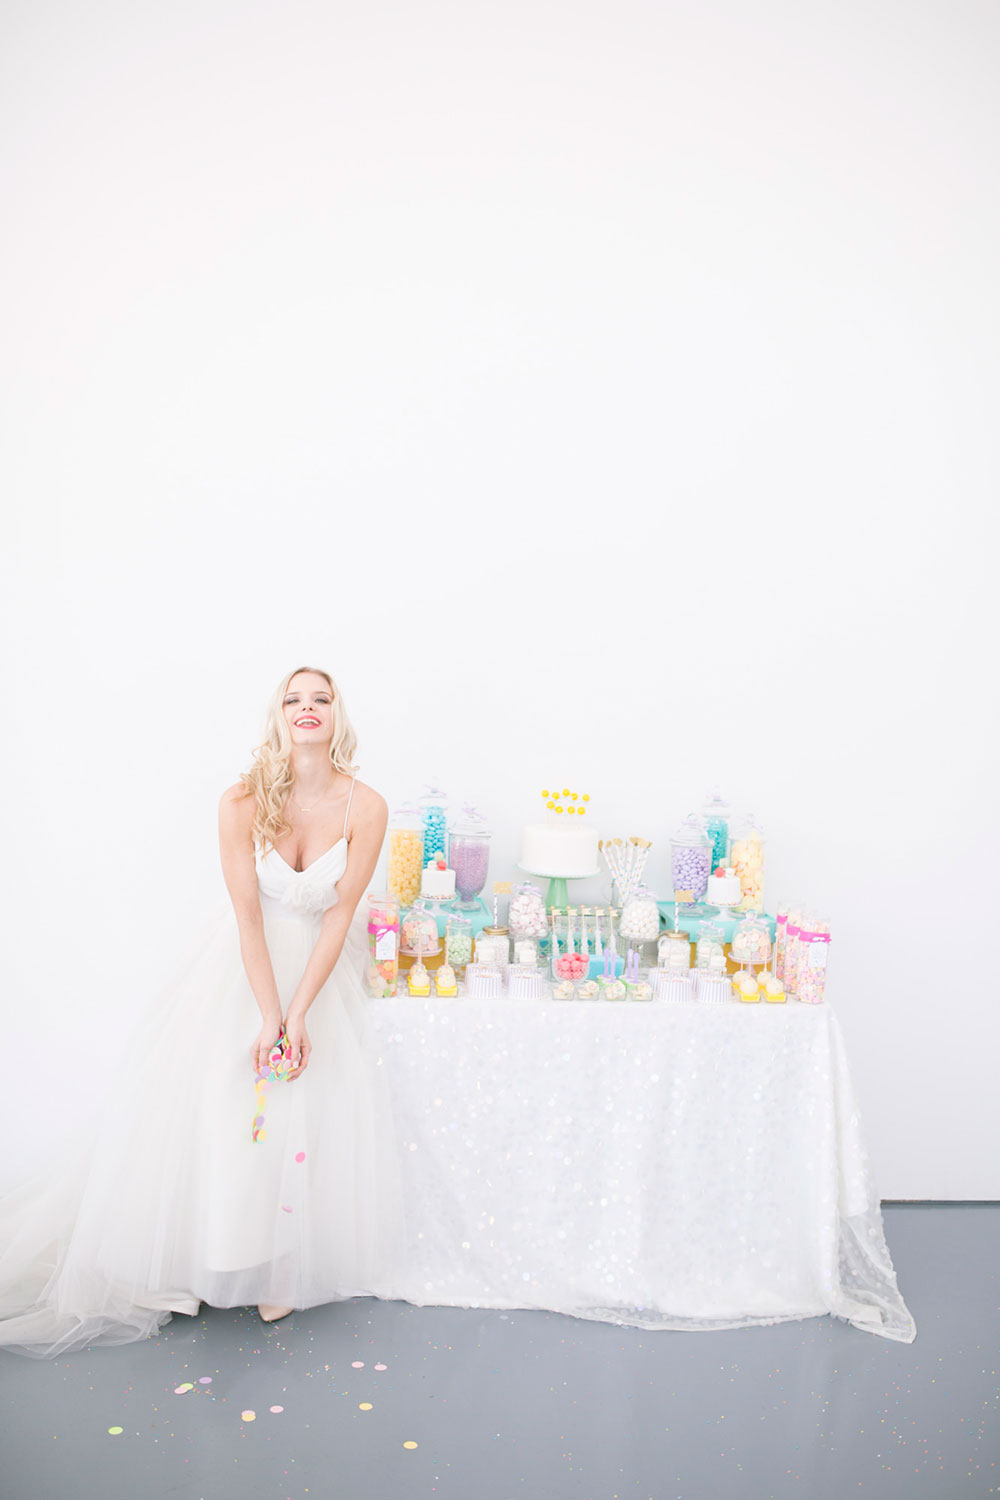 Wedding-Bells-Magazine-Wedding-Feature-Neon-Confetti-Editorial-photographers-Willowbank-Estate-photo-by-eva-derrick-photography-philosophy-studios-026.jpg